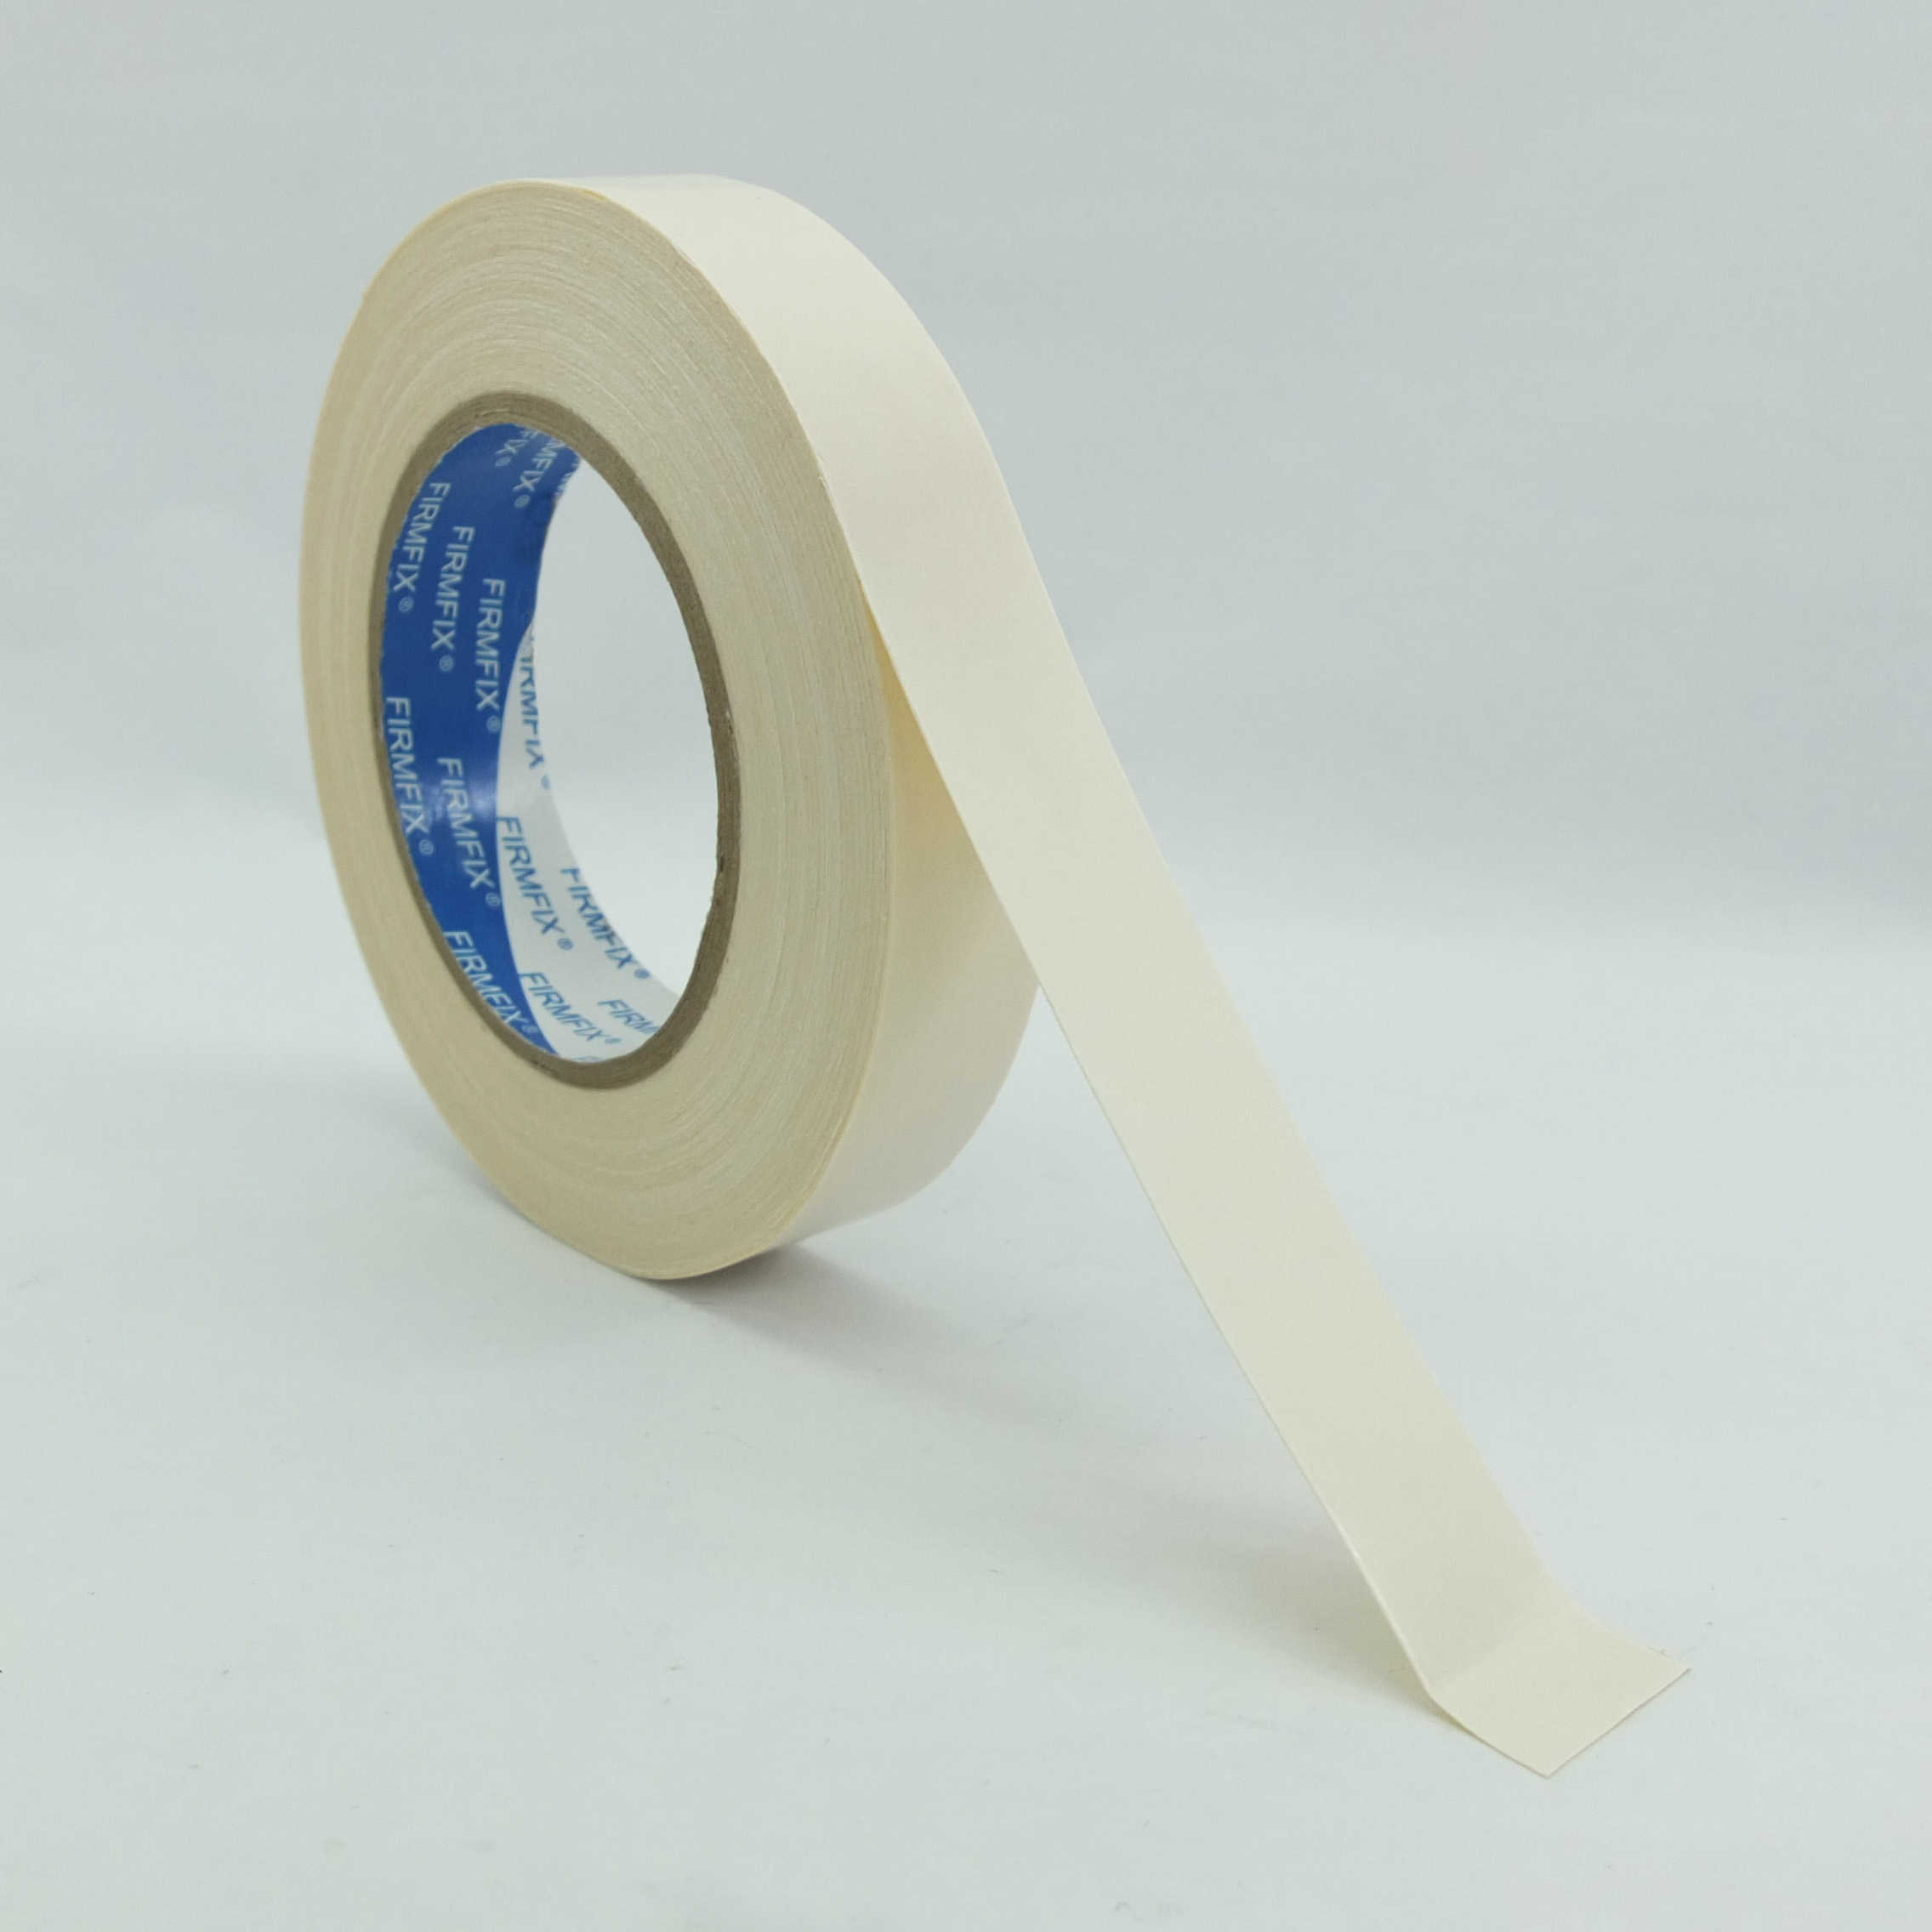 FIRMFIX Repositionable Tapes / Re-Positionable Tapes / Reposition Tapes